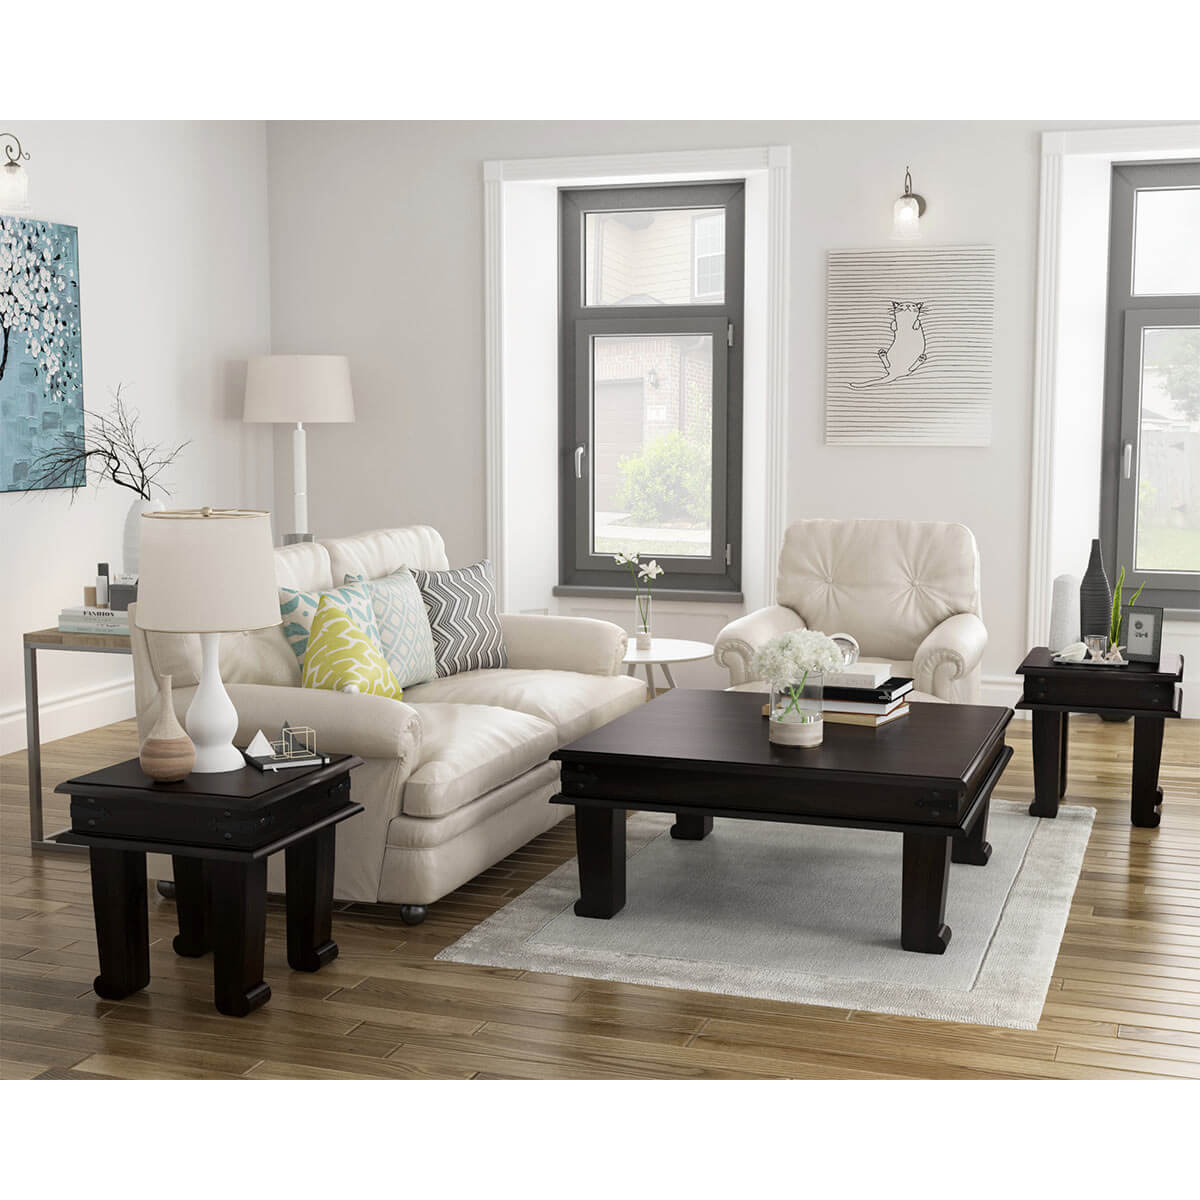 - Silverton Solid Wood 3 Piece Square Coffee Table Set